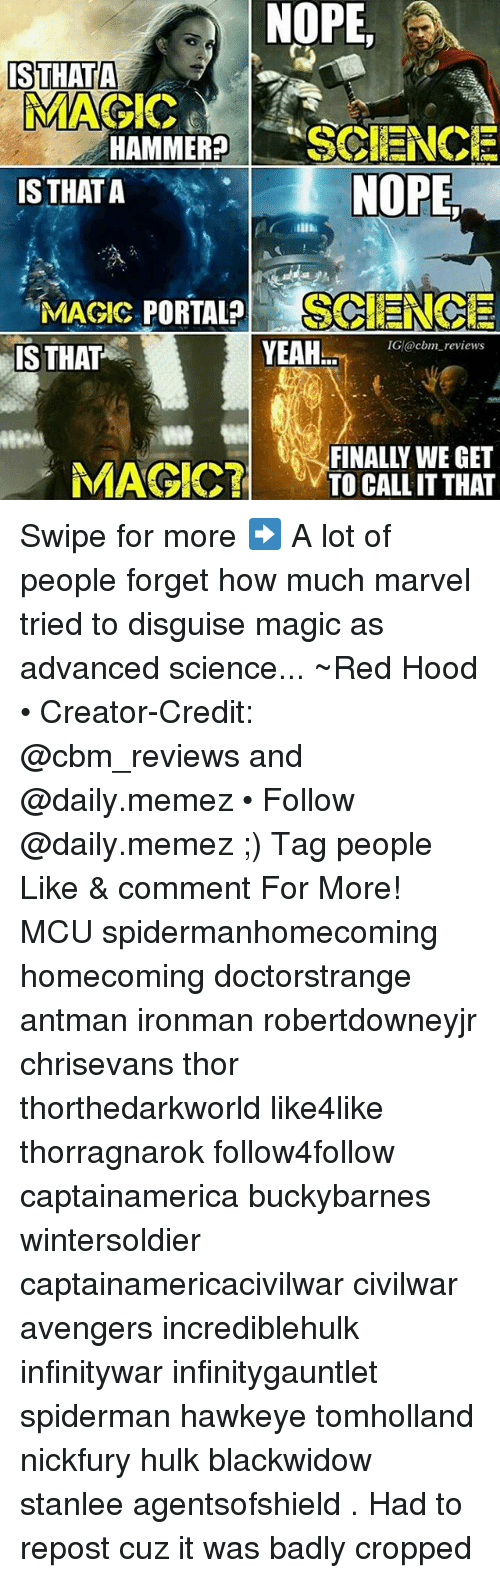 Memez: NOPE,  ISTHATA  MAGIC  HAMMER?SCIENCE  IS THAT A  NOPE,  YEAH  IG @cbm reviews  IS THAT  MAGIC7  FINALLY WE GET  TO CALL ITTHAT Swipe for more ➡ A lot of people forget how much marvel tried to disguise magic as advanced science... ~Red Hood • Creator-Credit: @cbm_reviews and @daily.memez • Follow @daily.memez ;) Tag people Like & comment For More! MCU spidermanhomecoming homecoming doctorstrange antman ironman robertdowneyjr chrisevans thor thorthedarkworld like4like thorragnarok follow4follow captainamerica buckybarnes wintersoldier captainamericacivilwar civilwar avengers incrediblehulk infinitywar infinitygauntlet spiderman hawkeye tomholland nickfury hulk blackwidow stanlee agentsofshield . Had to repost cuz it was badly cropped